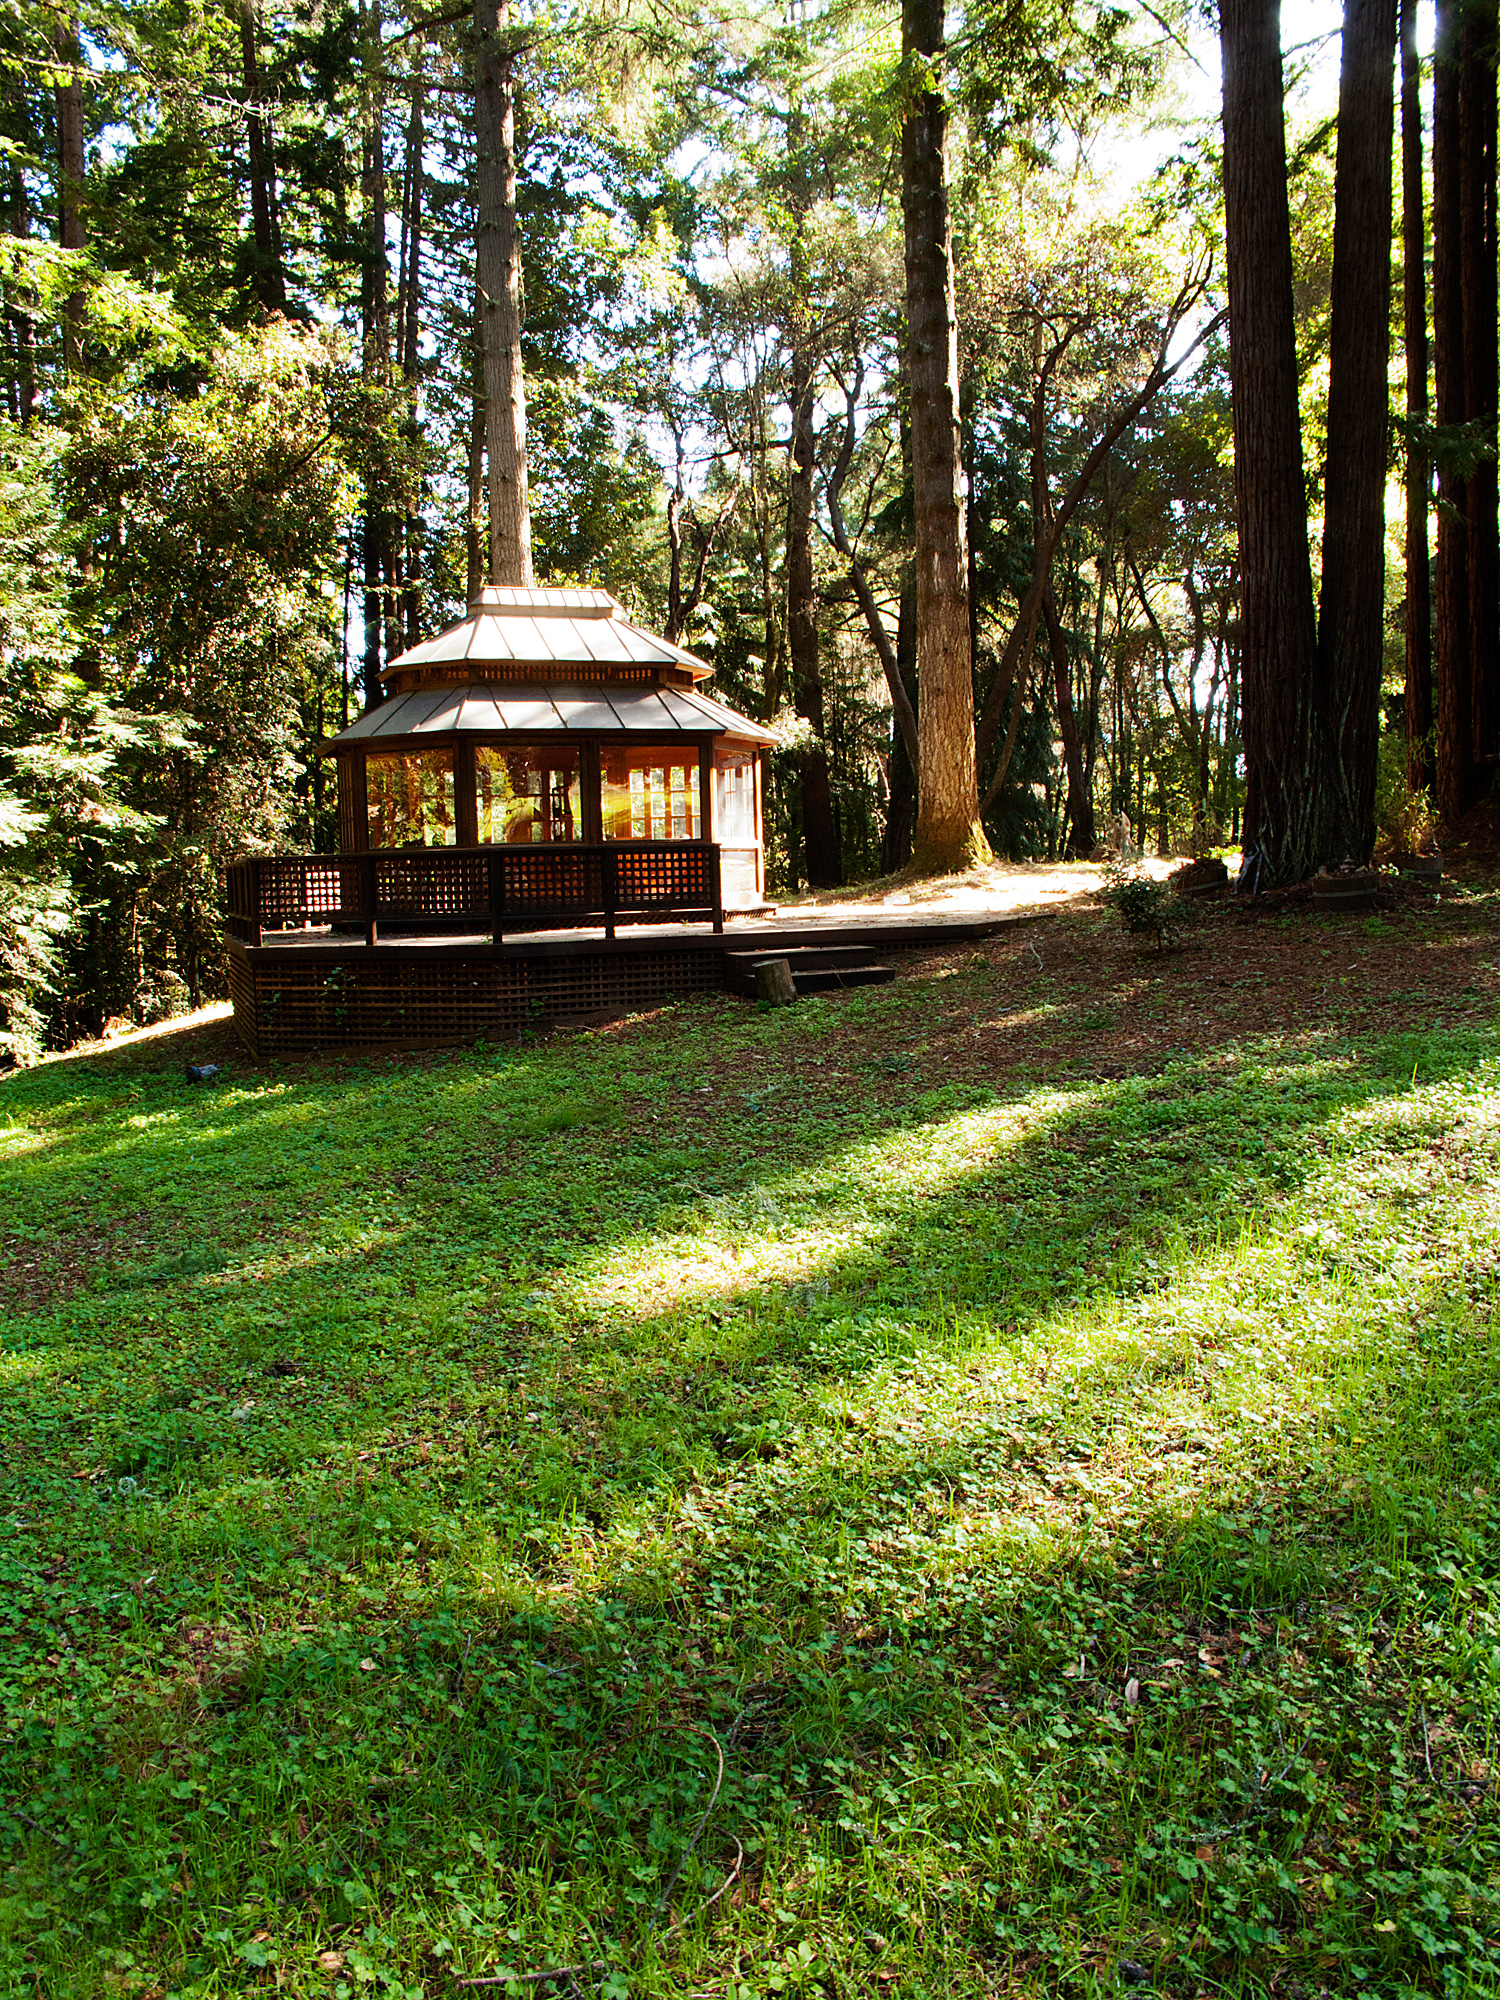 Gazebo in the Forest